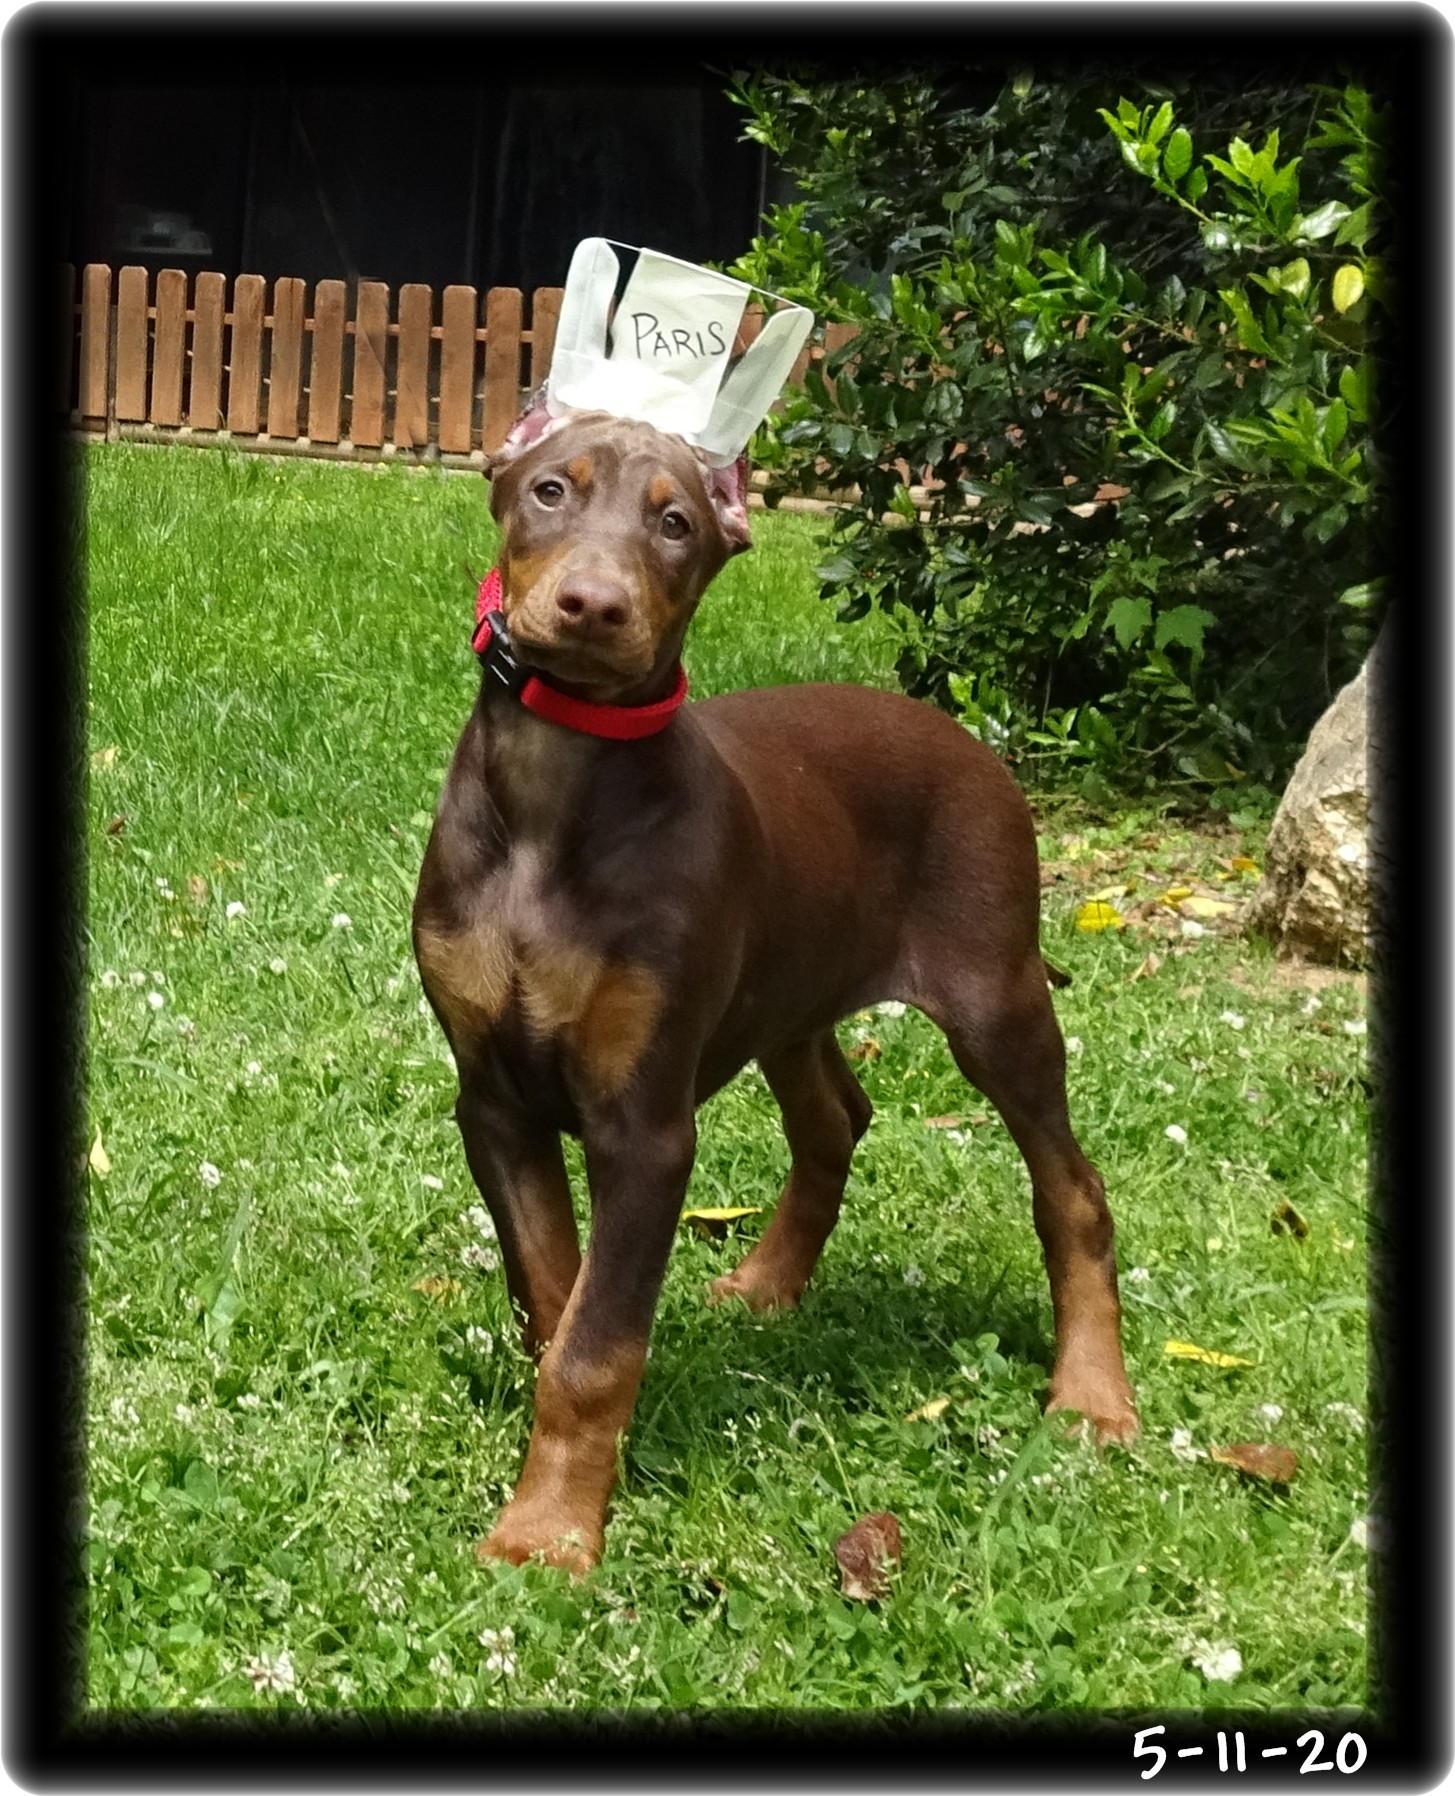 Paris ... Miska's strikingly red star - HOME ... A Super Pup 2 program graduate now in Louisiana - established client. Future Therapy Companion too.